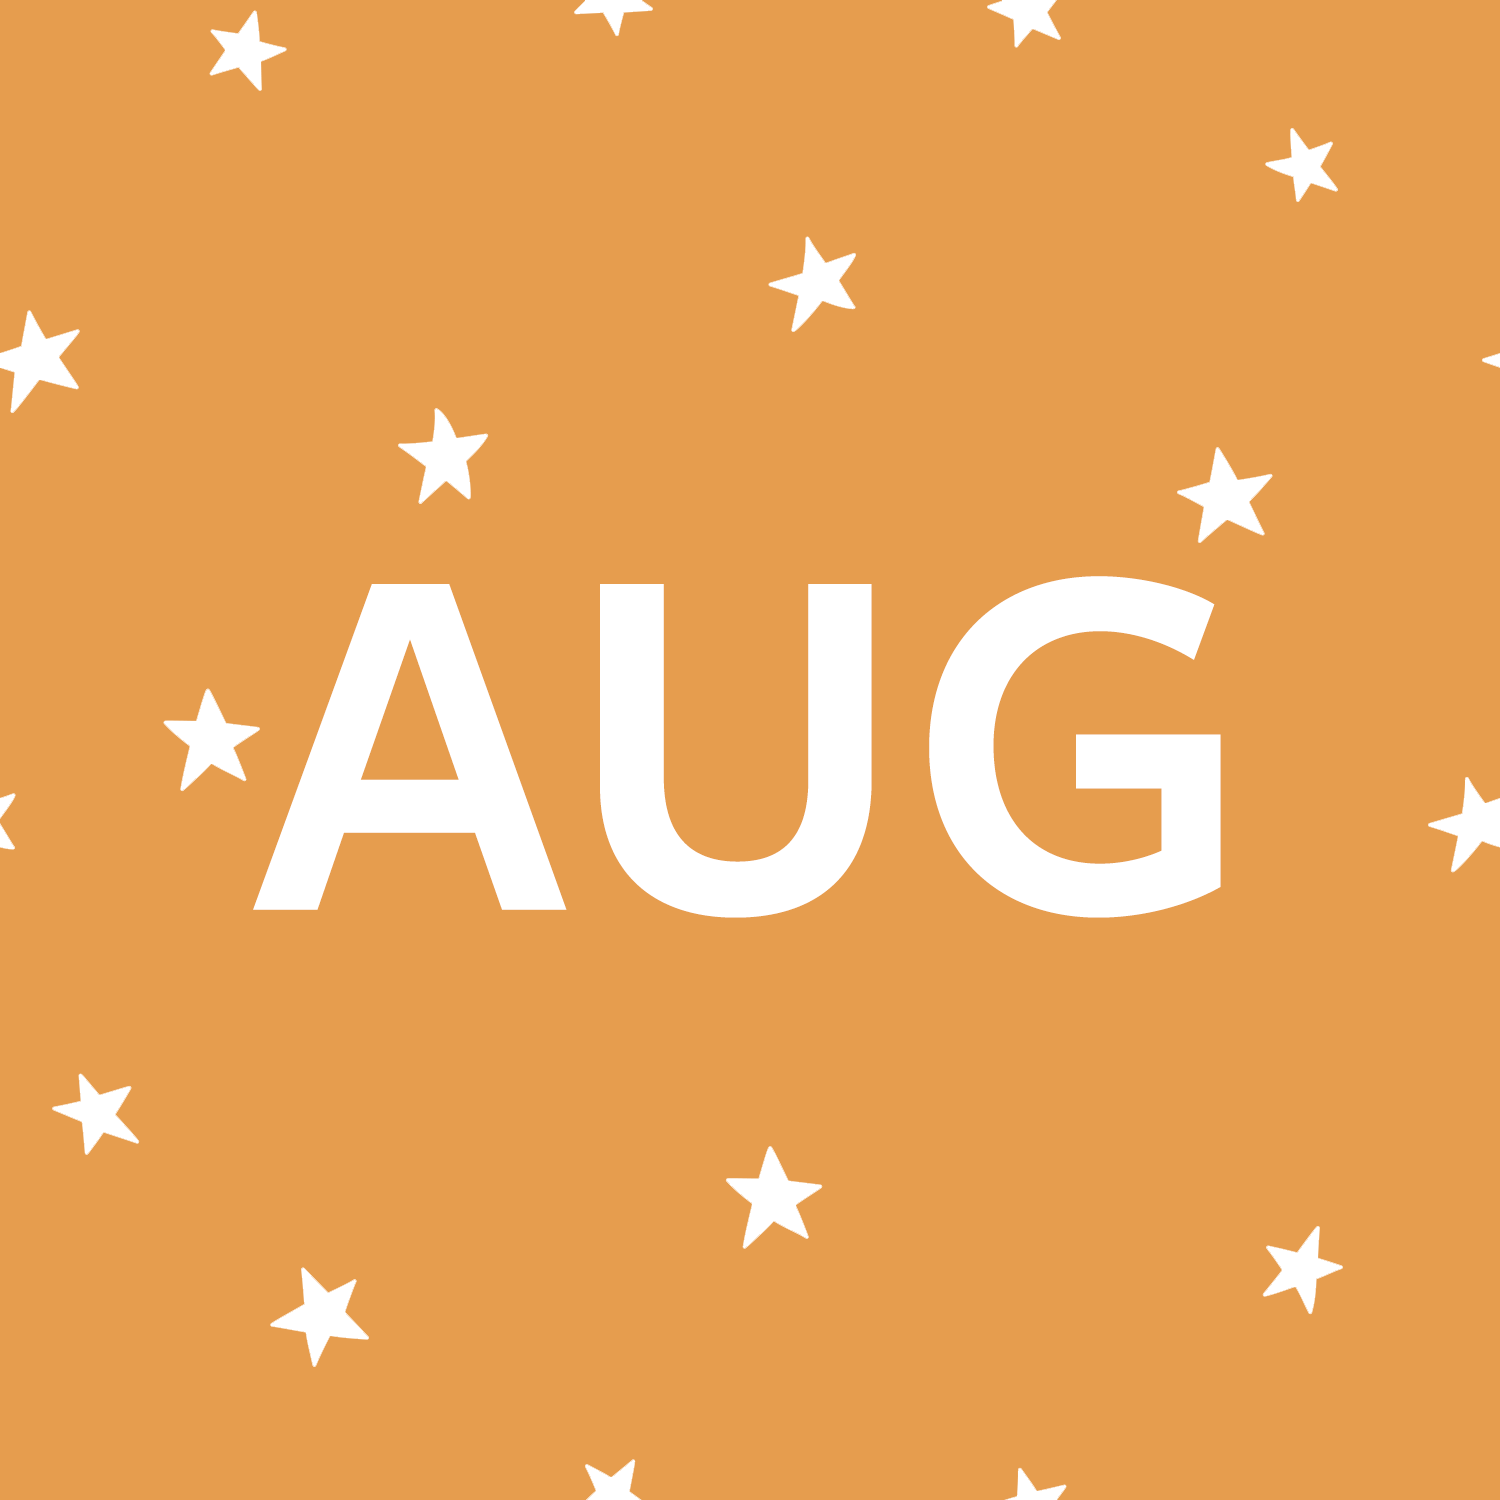 8 August.png